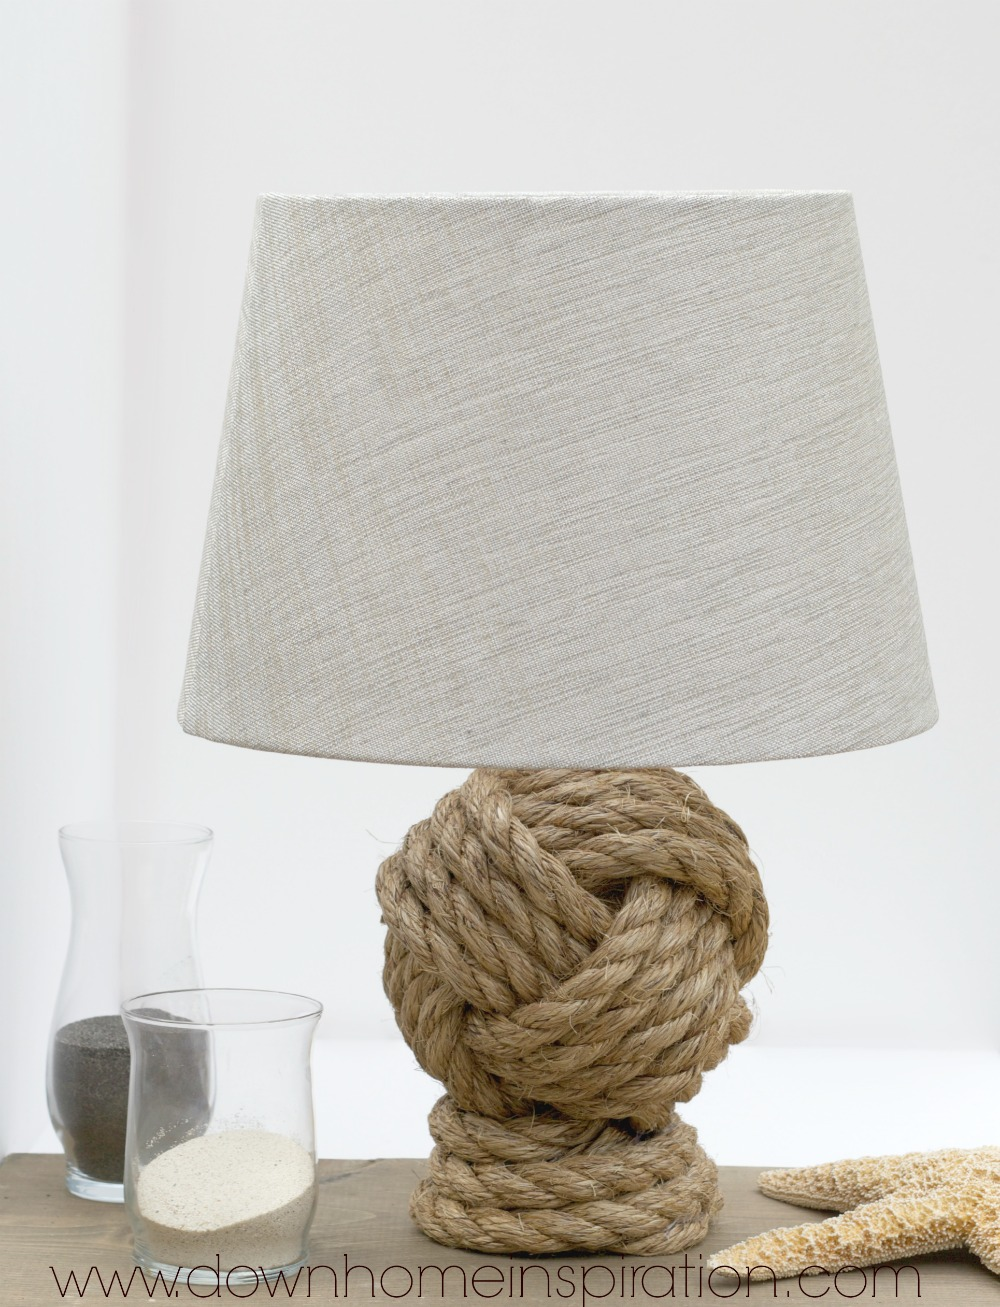 pottery-barn-knockoff-knot-rope-lamp-18